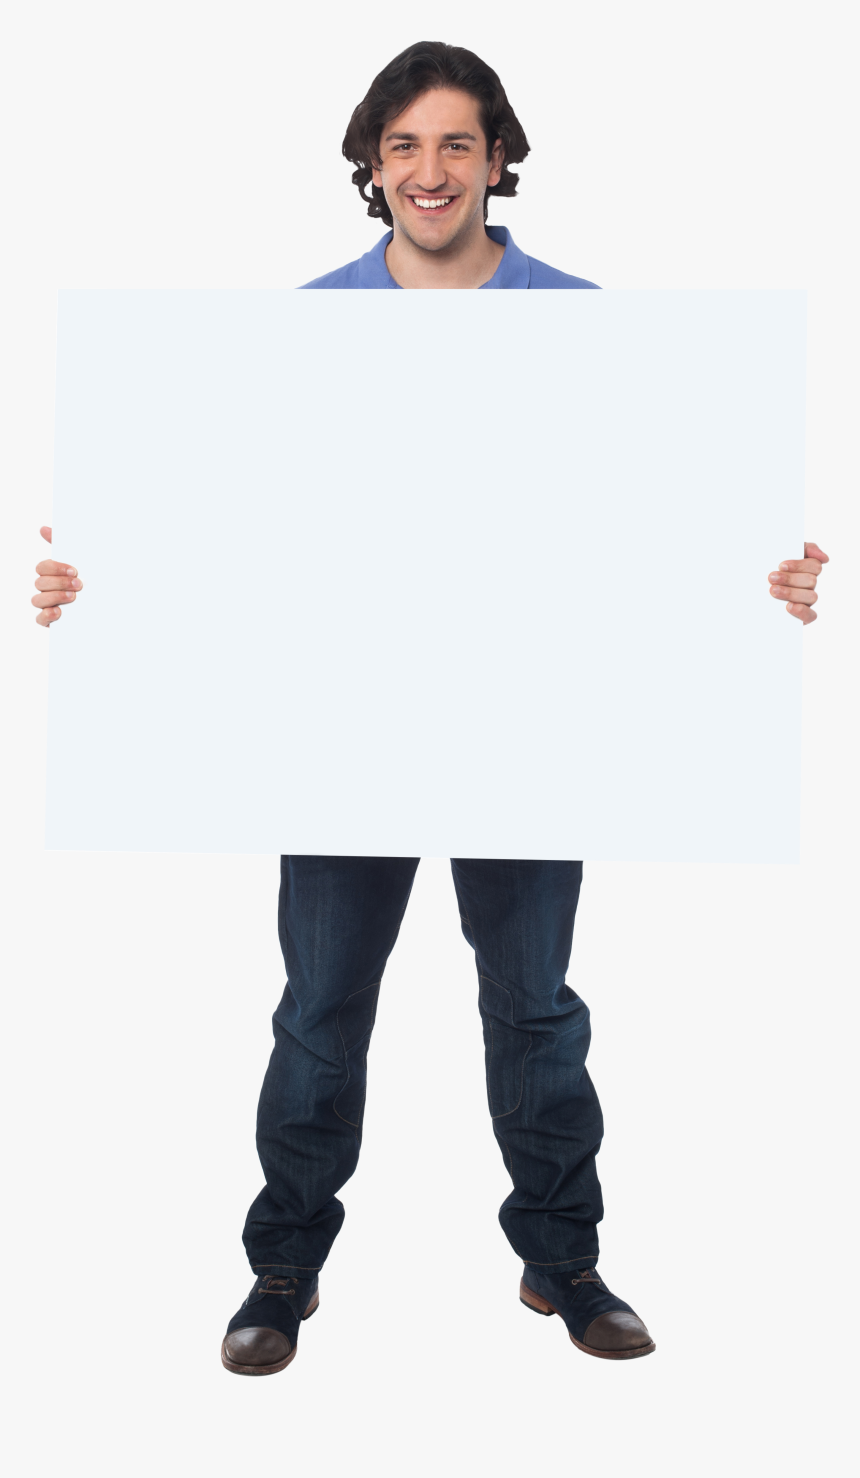 Men Holding Banner Png Stock Photo - Hold Banner Png, Transparent Png, Free Download